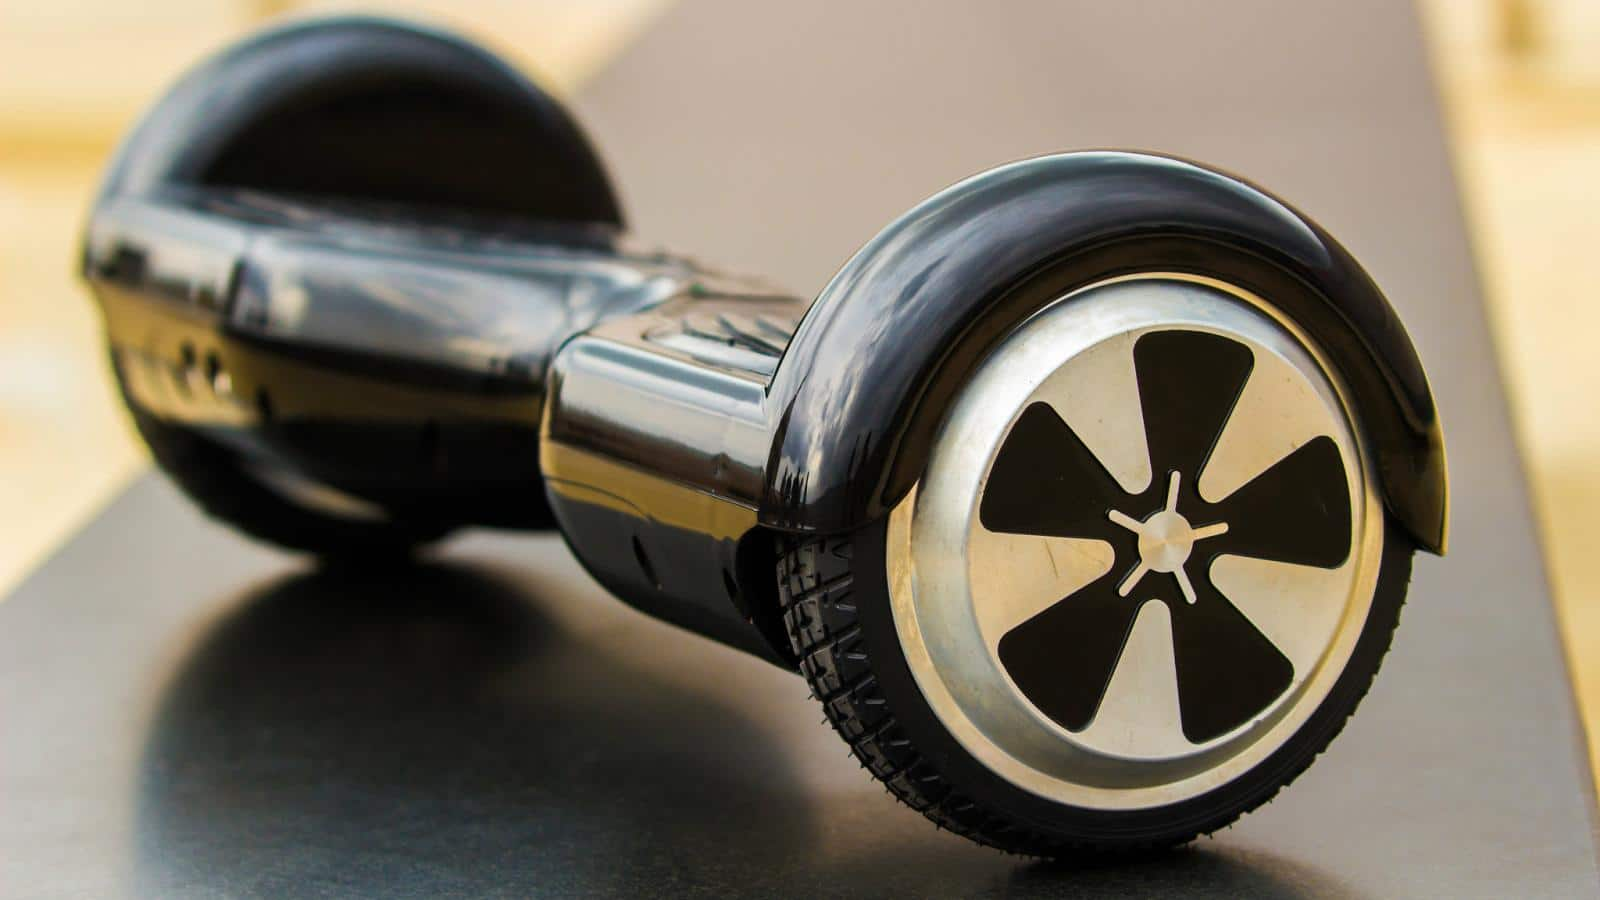 How To Customise Your Hoverboard In A More Fashionable Way?